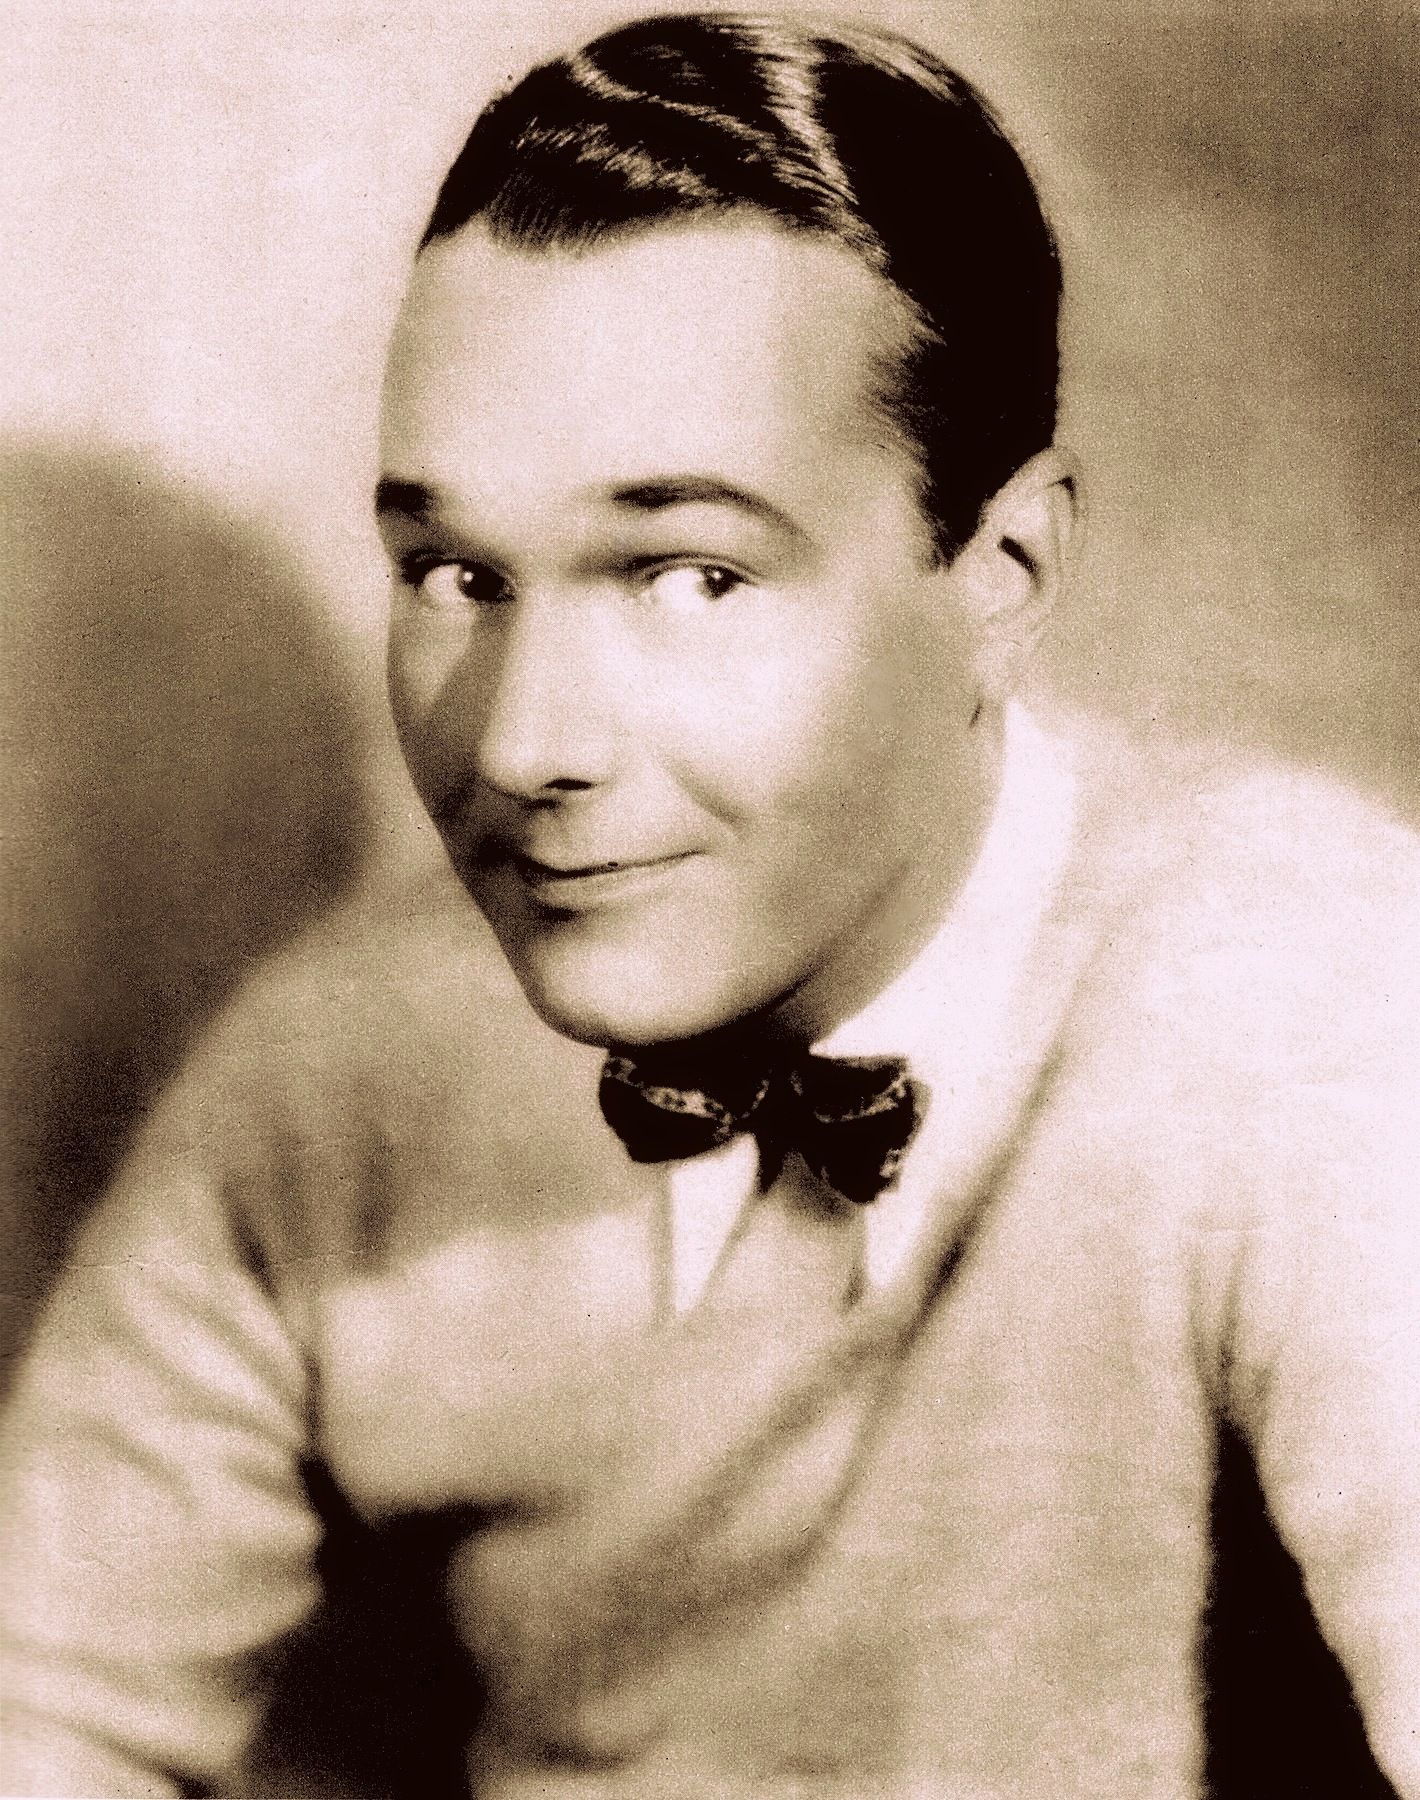 WILLIAM 'Billie' HAINES (Motion Picture March 1930) top gay actor who refused to tow the studio line, & pretend to be straight & lived openly with his partner of 50 years. Best friend to Joan Crawford who set him up as an interior decorator, & asked all her friends to help. See the doco on his life www.youtube.com/... and the book Class Act by Peter Schifando & Jean H. Mathison (2005) (please follow minkshmink on pinterest) #billiehaines #williamhaines